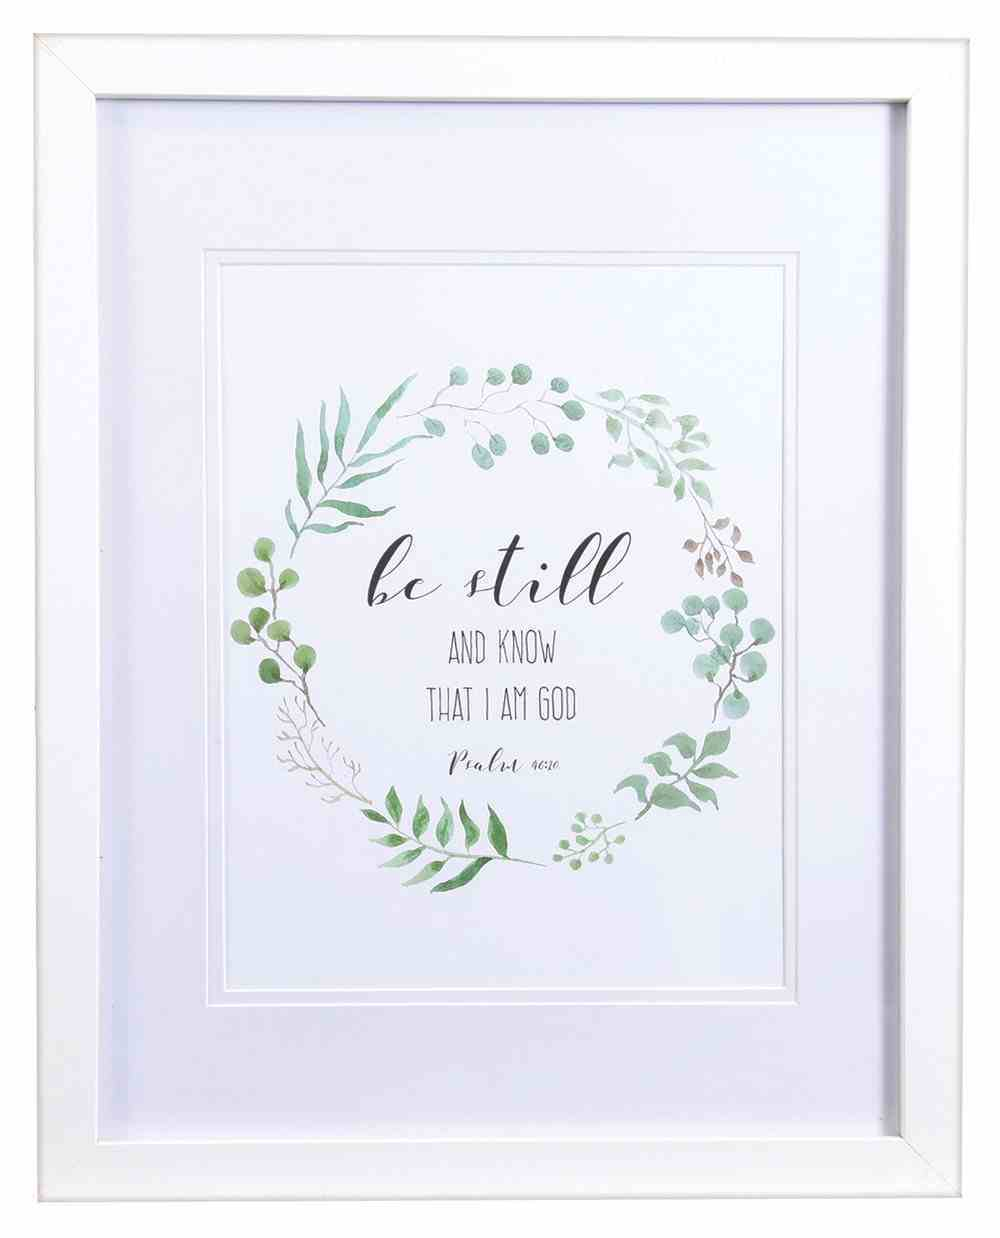 Medium Framed Print: Leaves Wreath, Be Still & Know That I Am God (Psalm 46:10) Plaque